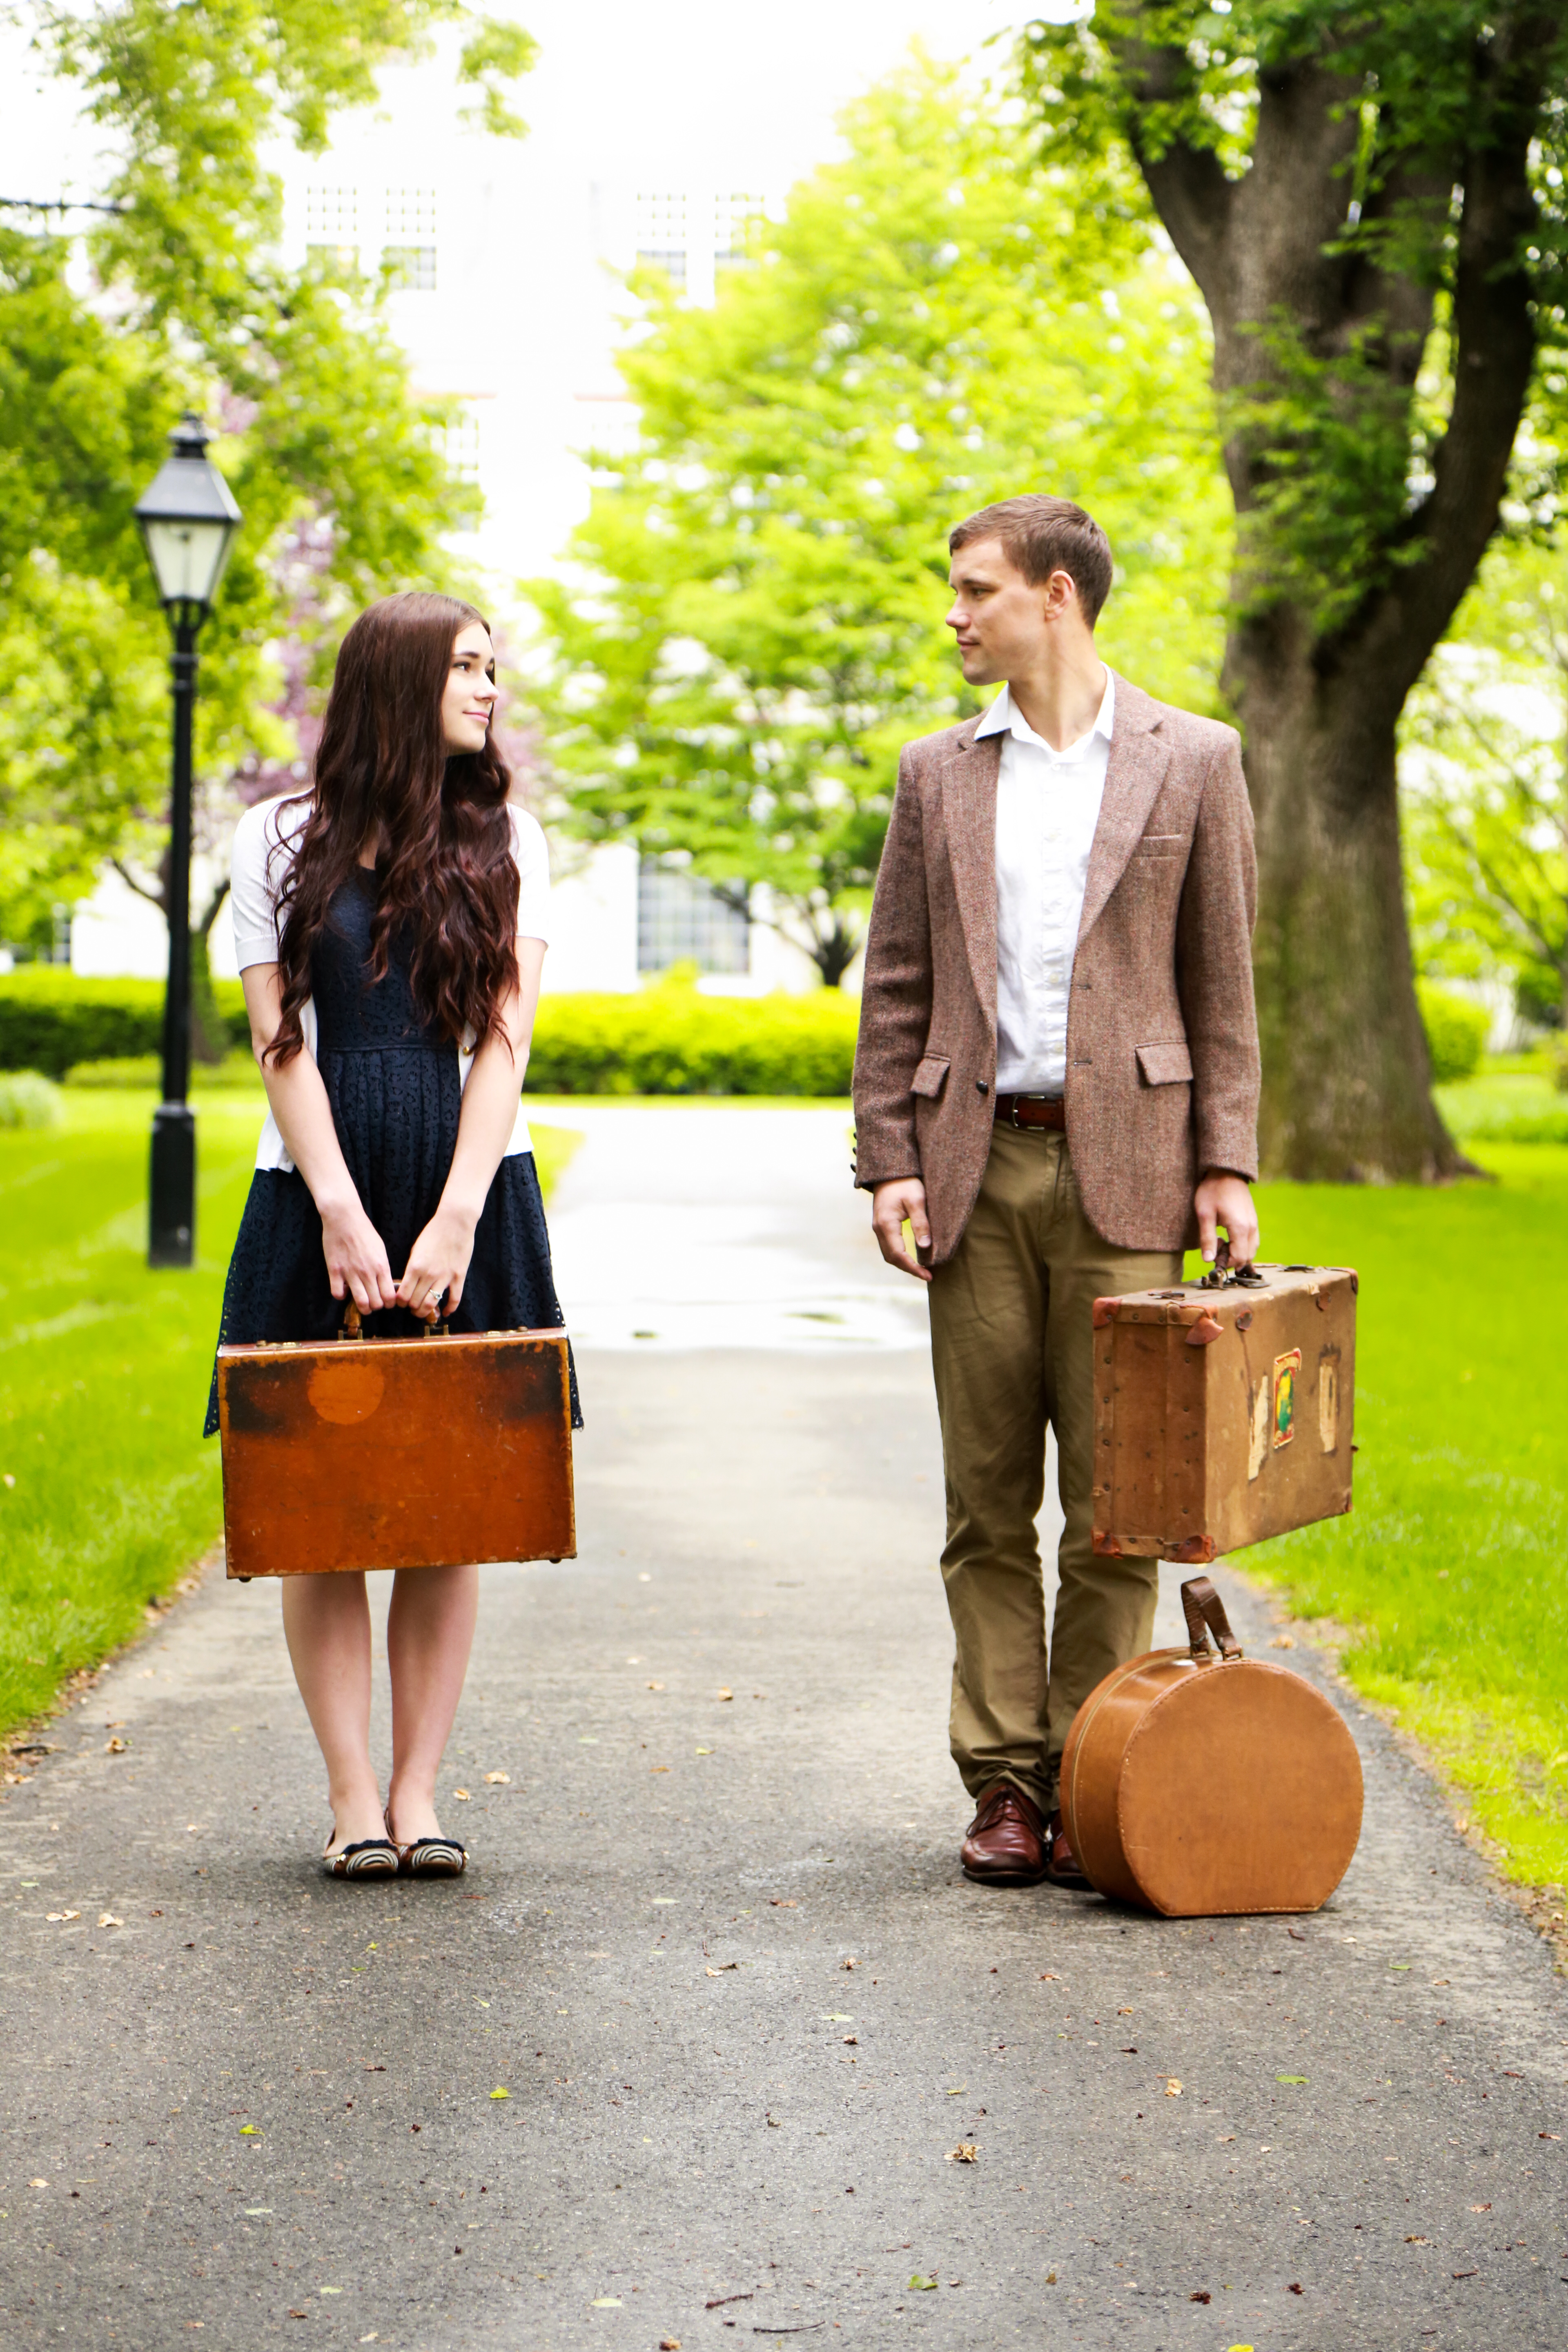 Traveling companions for singles